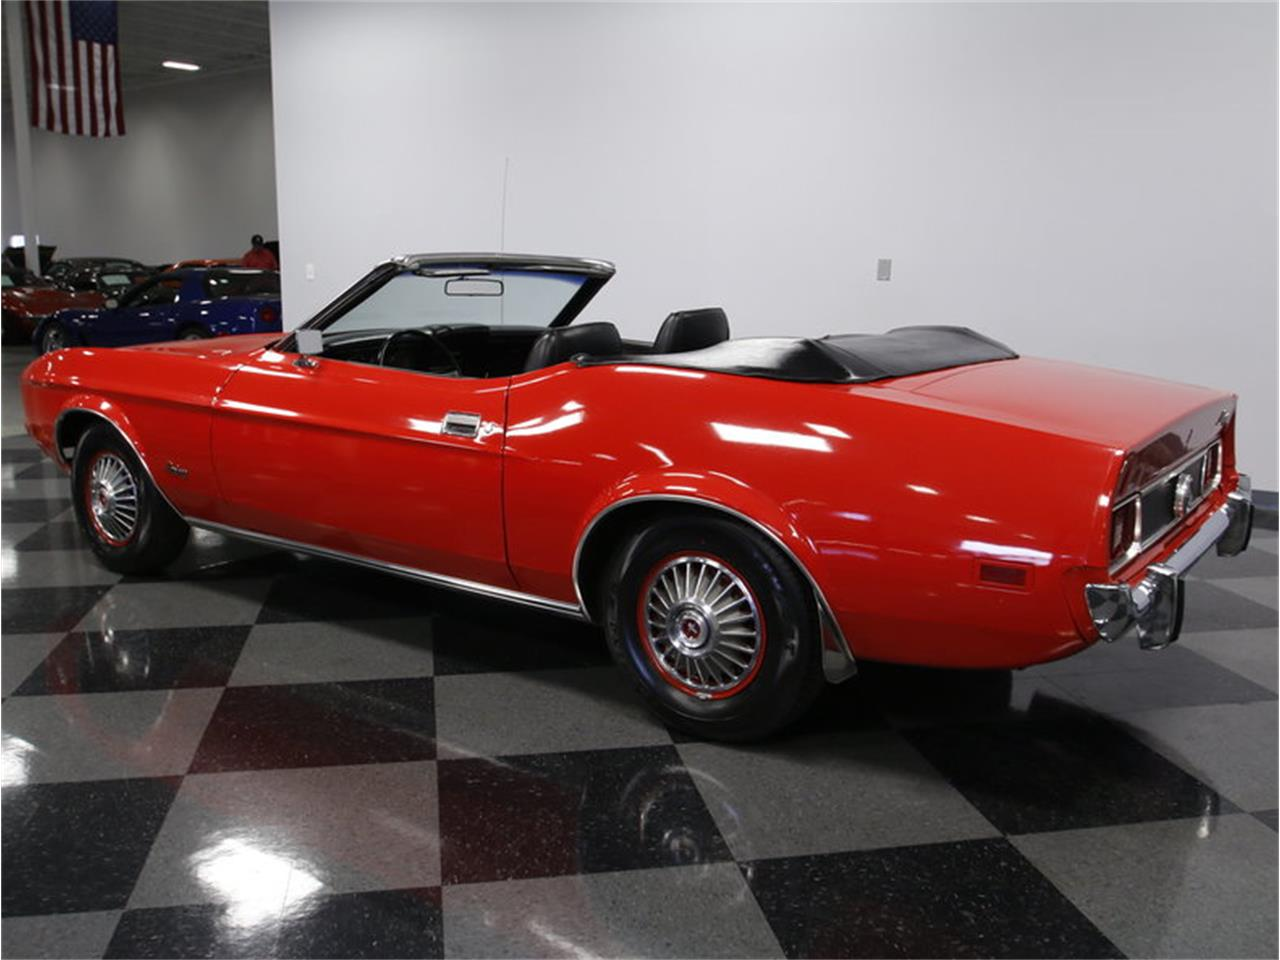 Large Picture of 1973 Mustang 351 Cobra Jet - $24,995.00 Offered by Streetside Classics - Charlotte - KISW